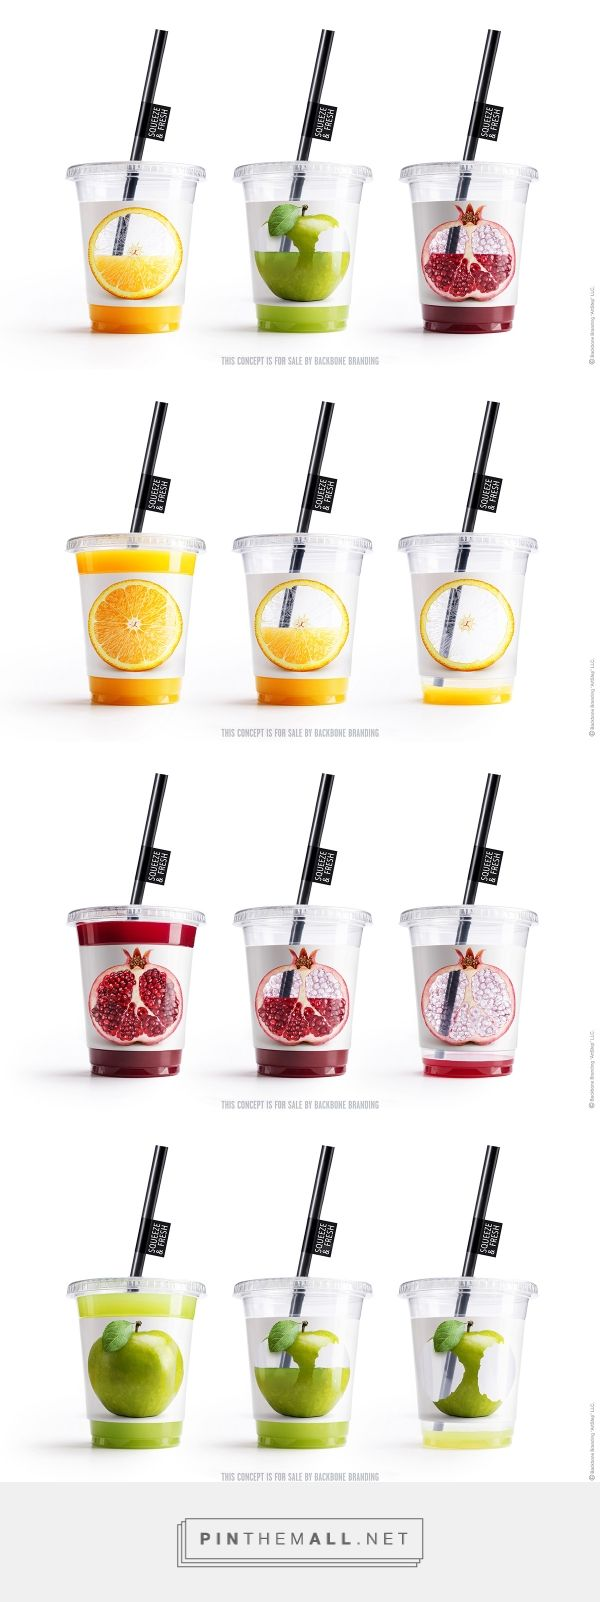 SW-similar to the pasta, this design users negative cut out sections to create a memorable image; the fruit  draining of juice as you drink is an image that sticks - Squeeze & Fresh by Backbone Branding